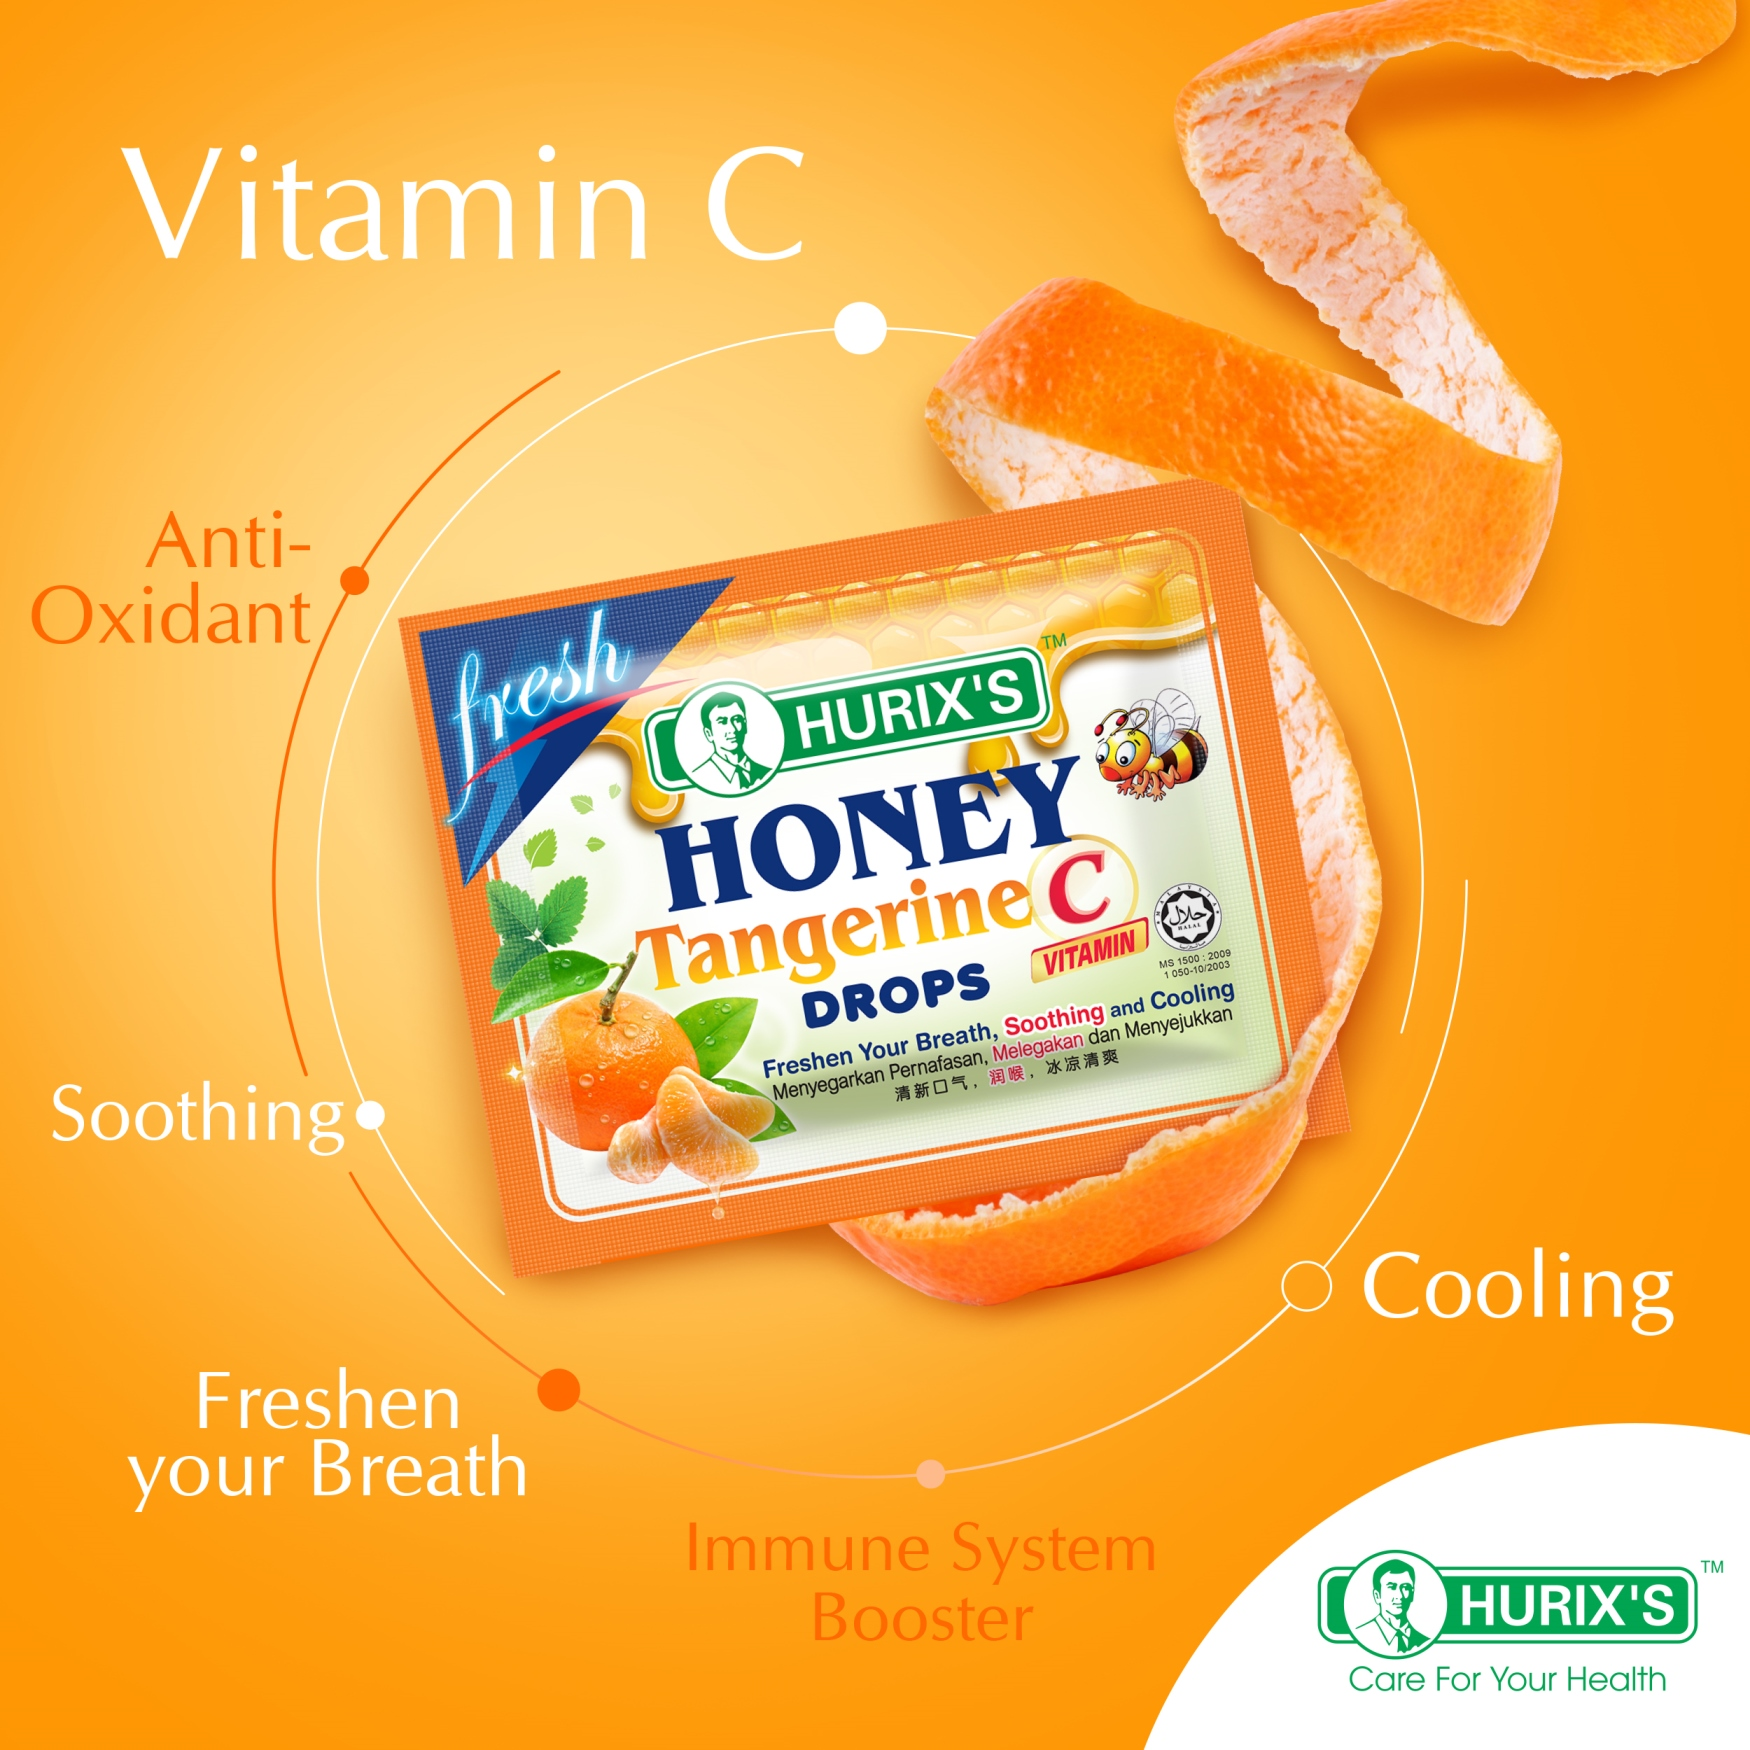 Hurix's Honey Tangerine Drops vitamin C